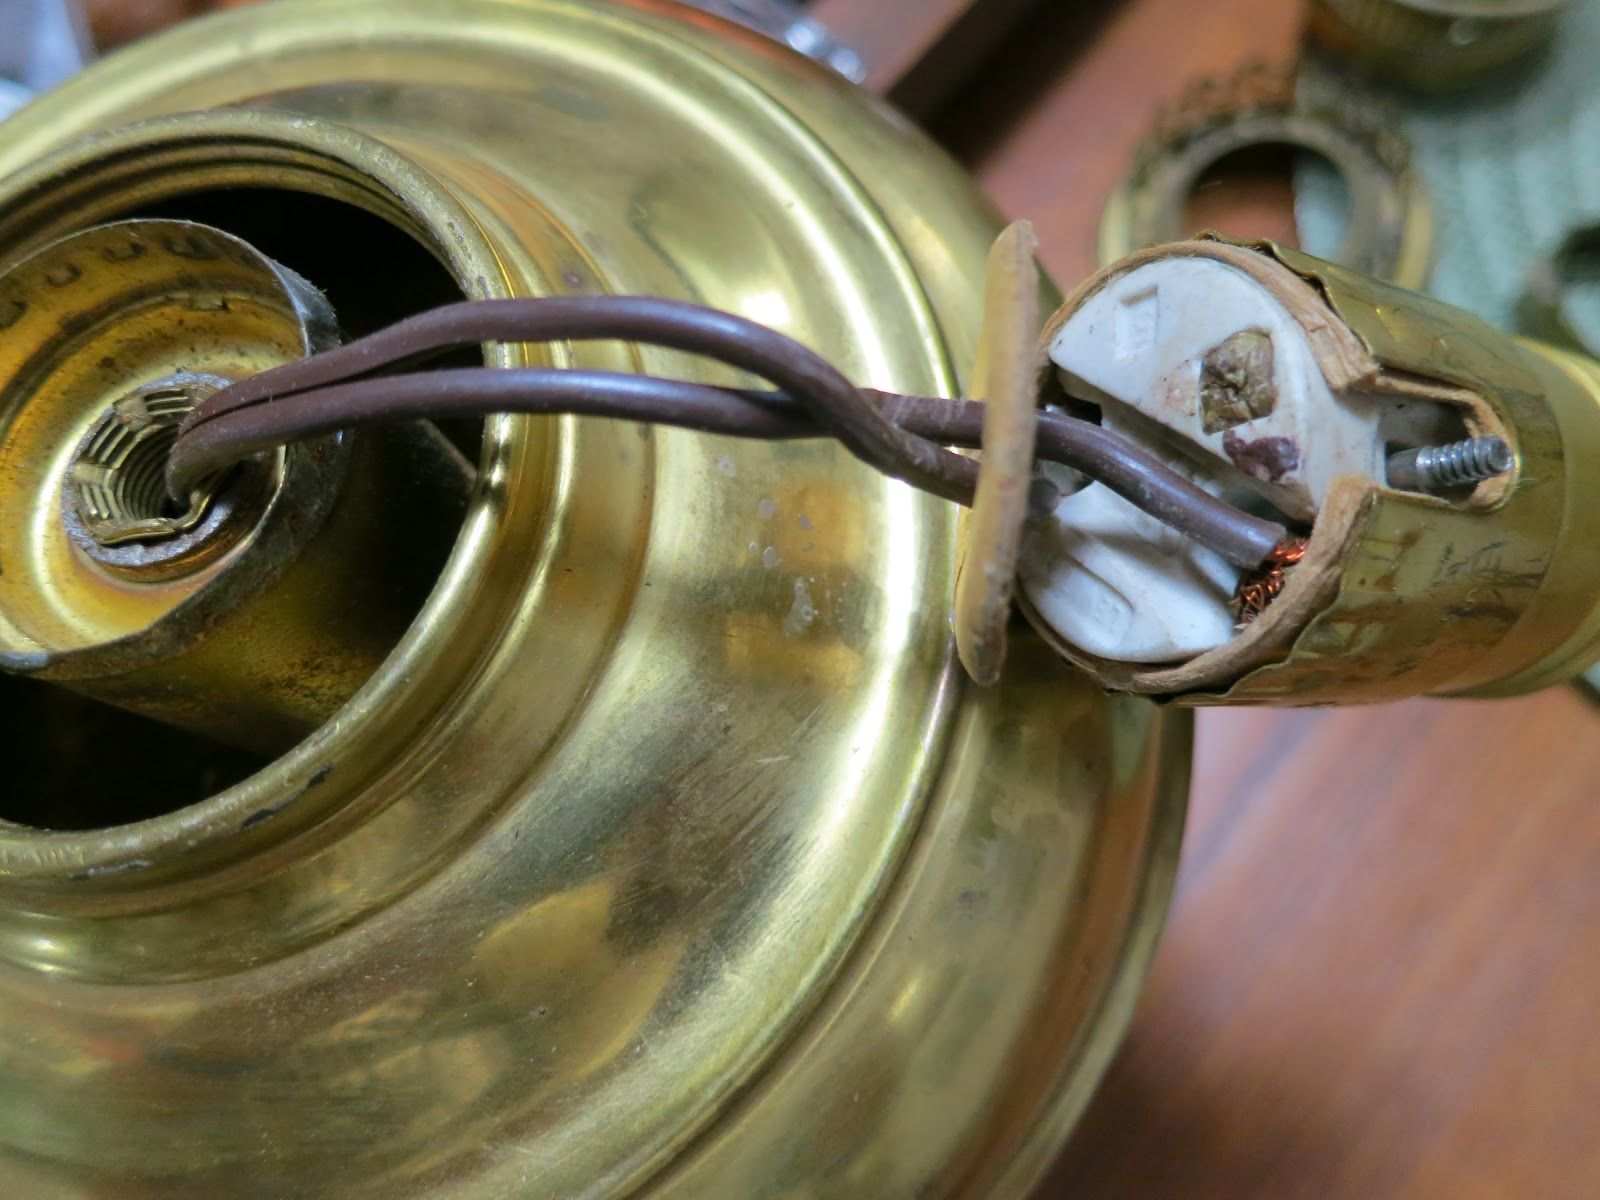 How To Rewire An Extension Cord 8 Steps Ehow